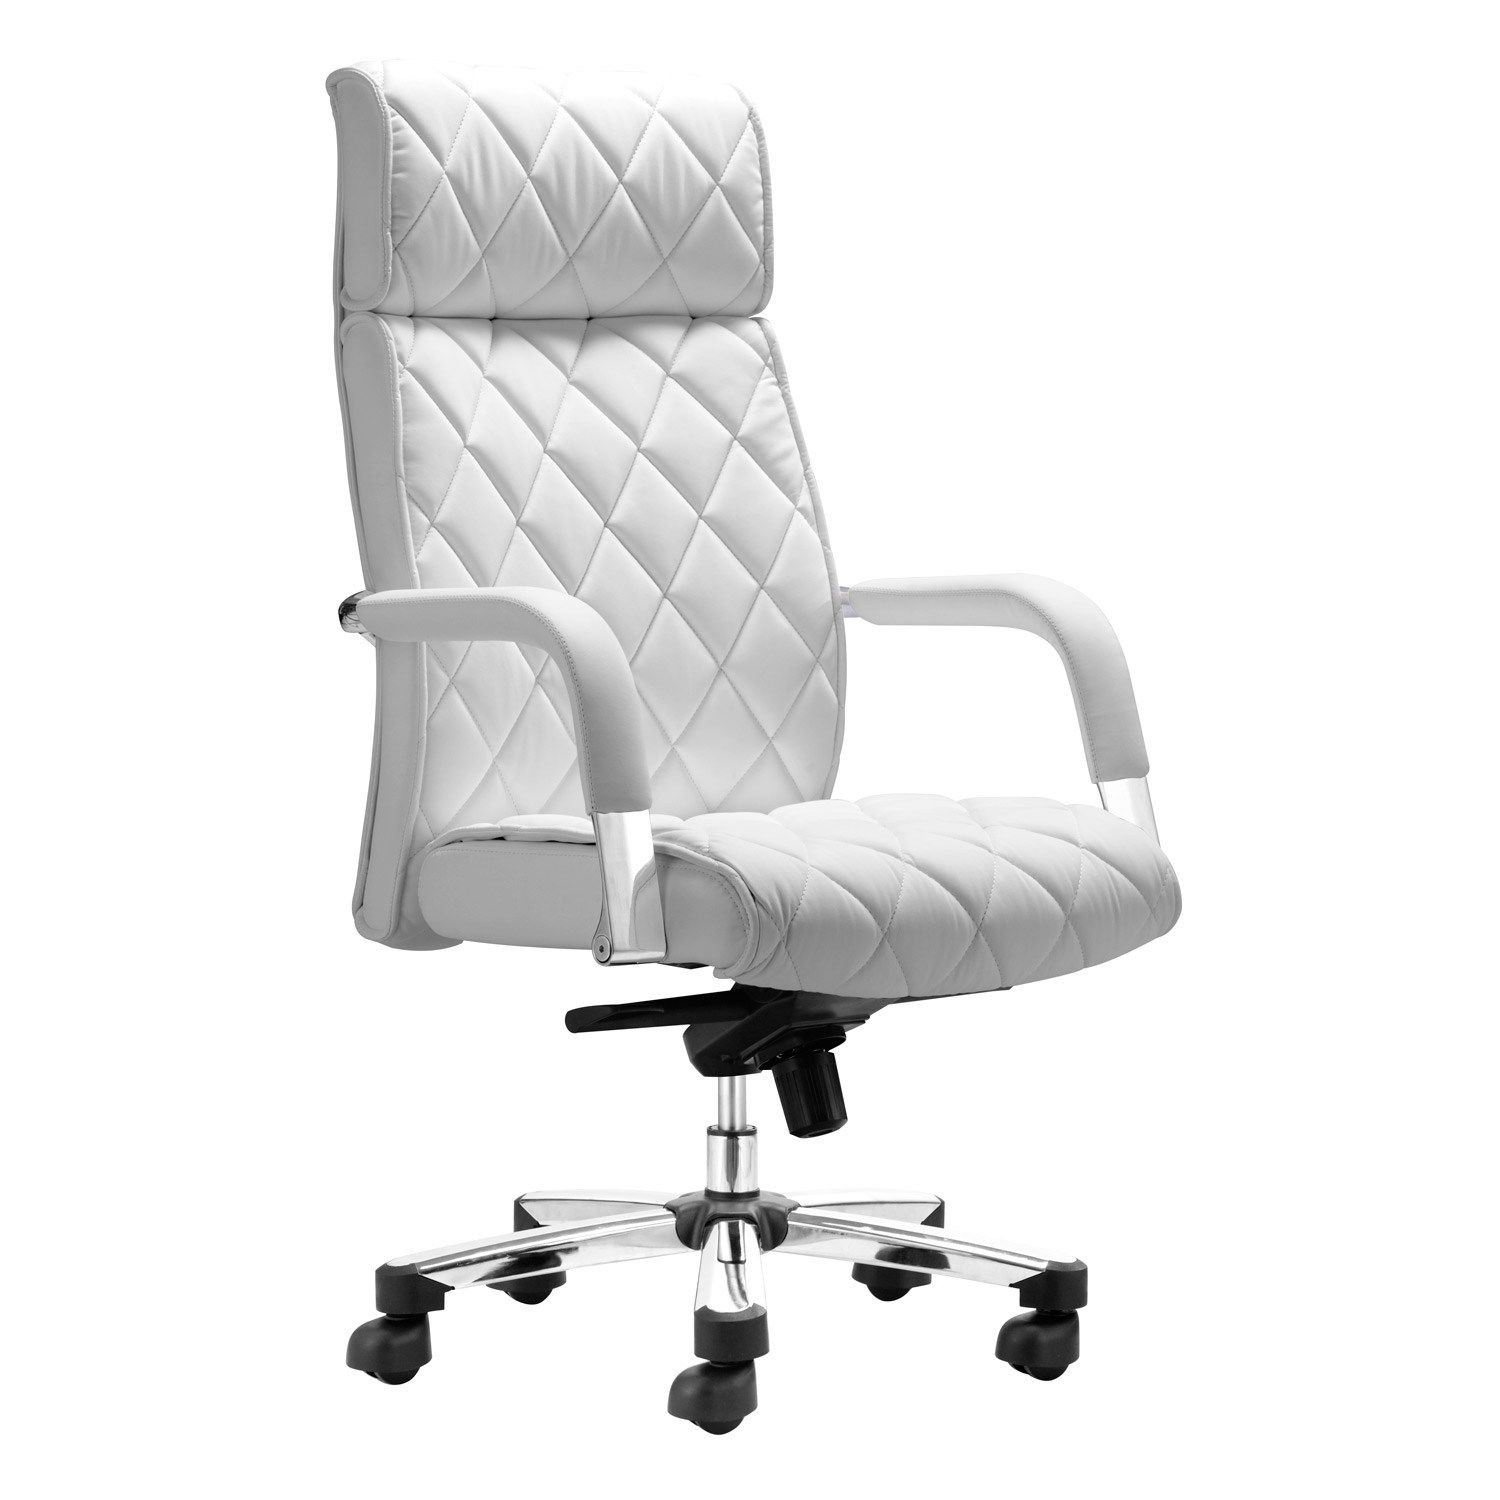 Regal White Office Chair #quilted  White leather office chair